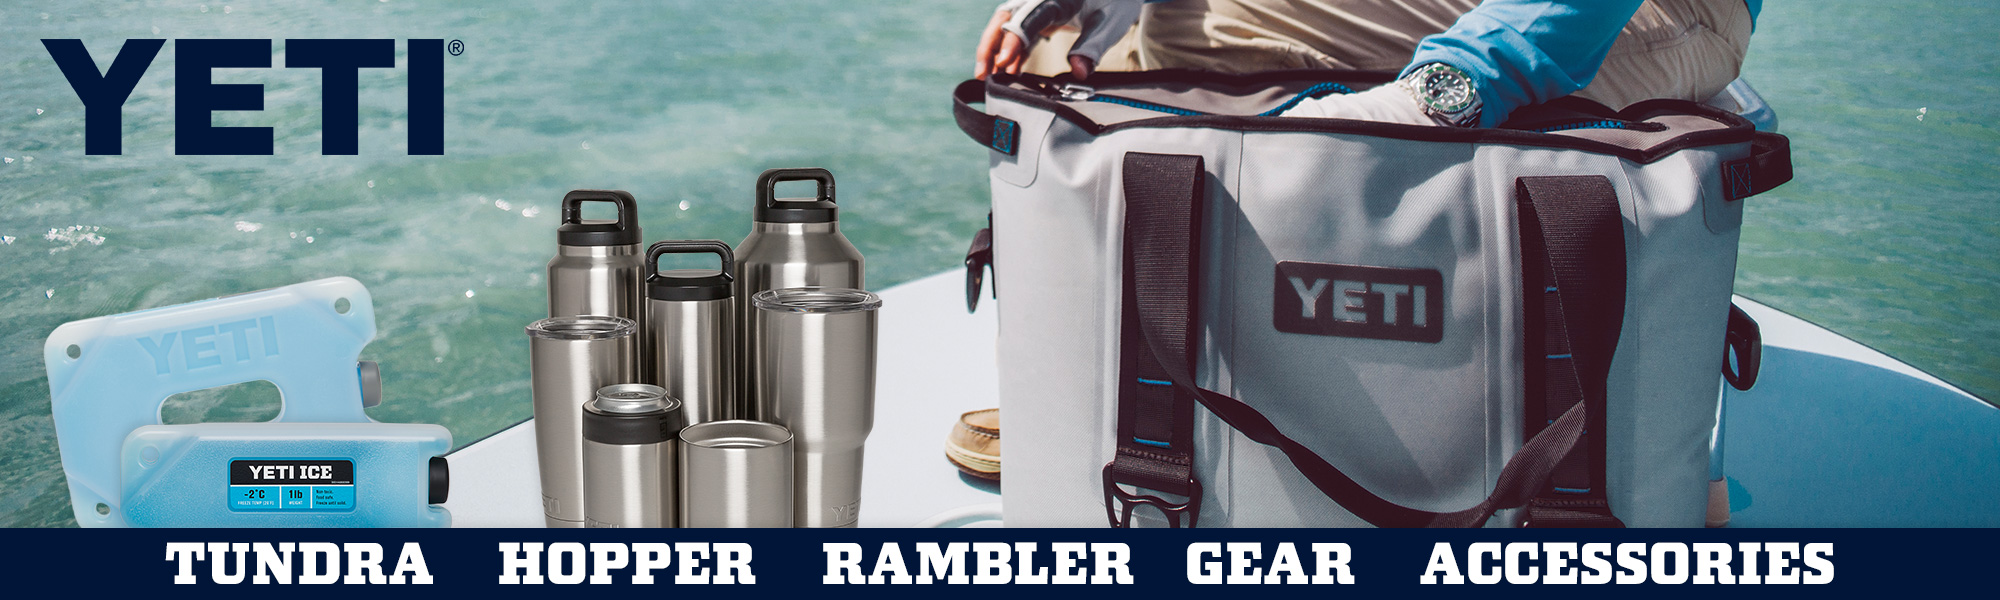 We carry all the latest YETI products - Tundra, Hopper, Rambler and more